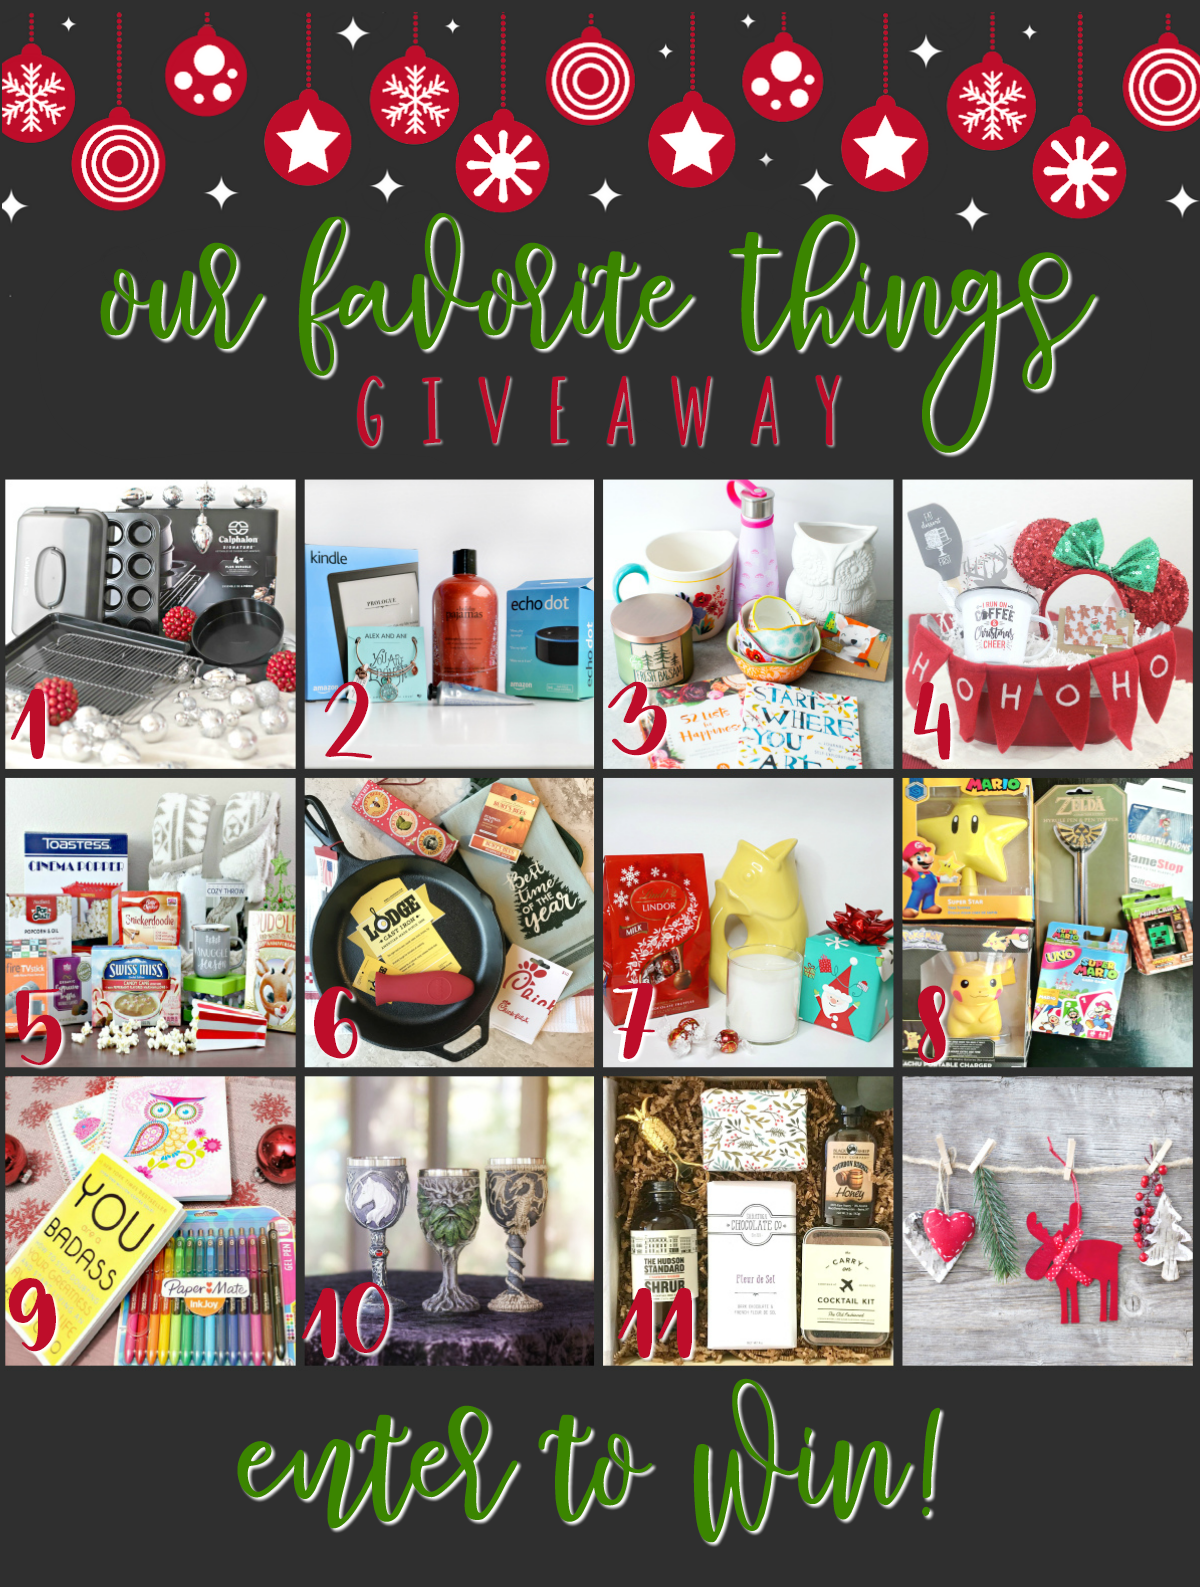 Last year I came across the most wonderful Favorite Things giveaway hop. Since then I've been wanting to share some of my own favorite things with you, so I figured the holidays would be the perfect time to join forces with some of my favorite blogging friends for a My Favorite Things Holiday Giveaway Hop. You're going to love the very personalized prize packages that have been put together just for you! Are you ready for this?!?!